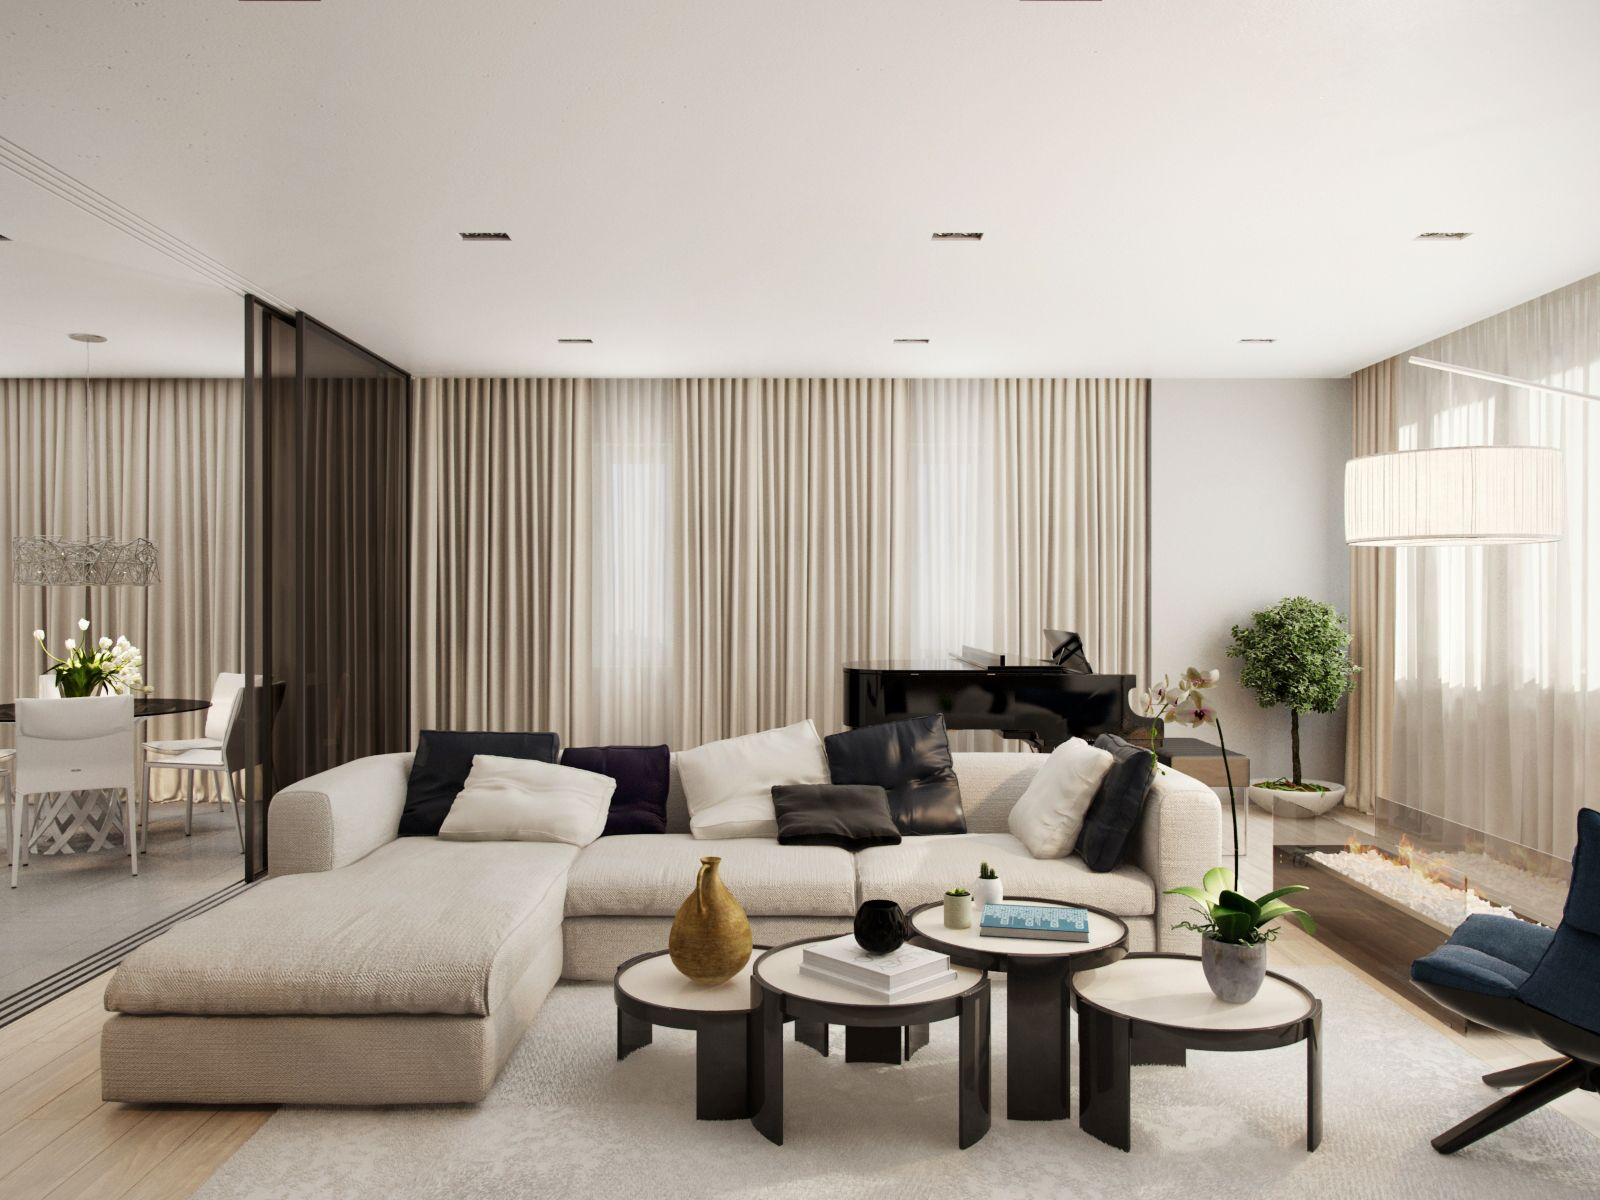 гостиная комната | Interiores | Pinterest | Living rooms, Room and ...